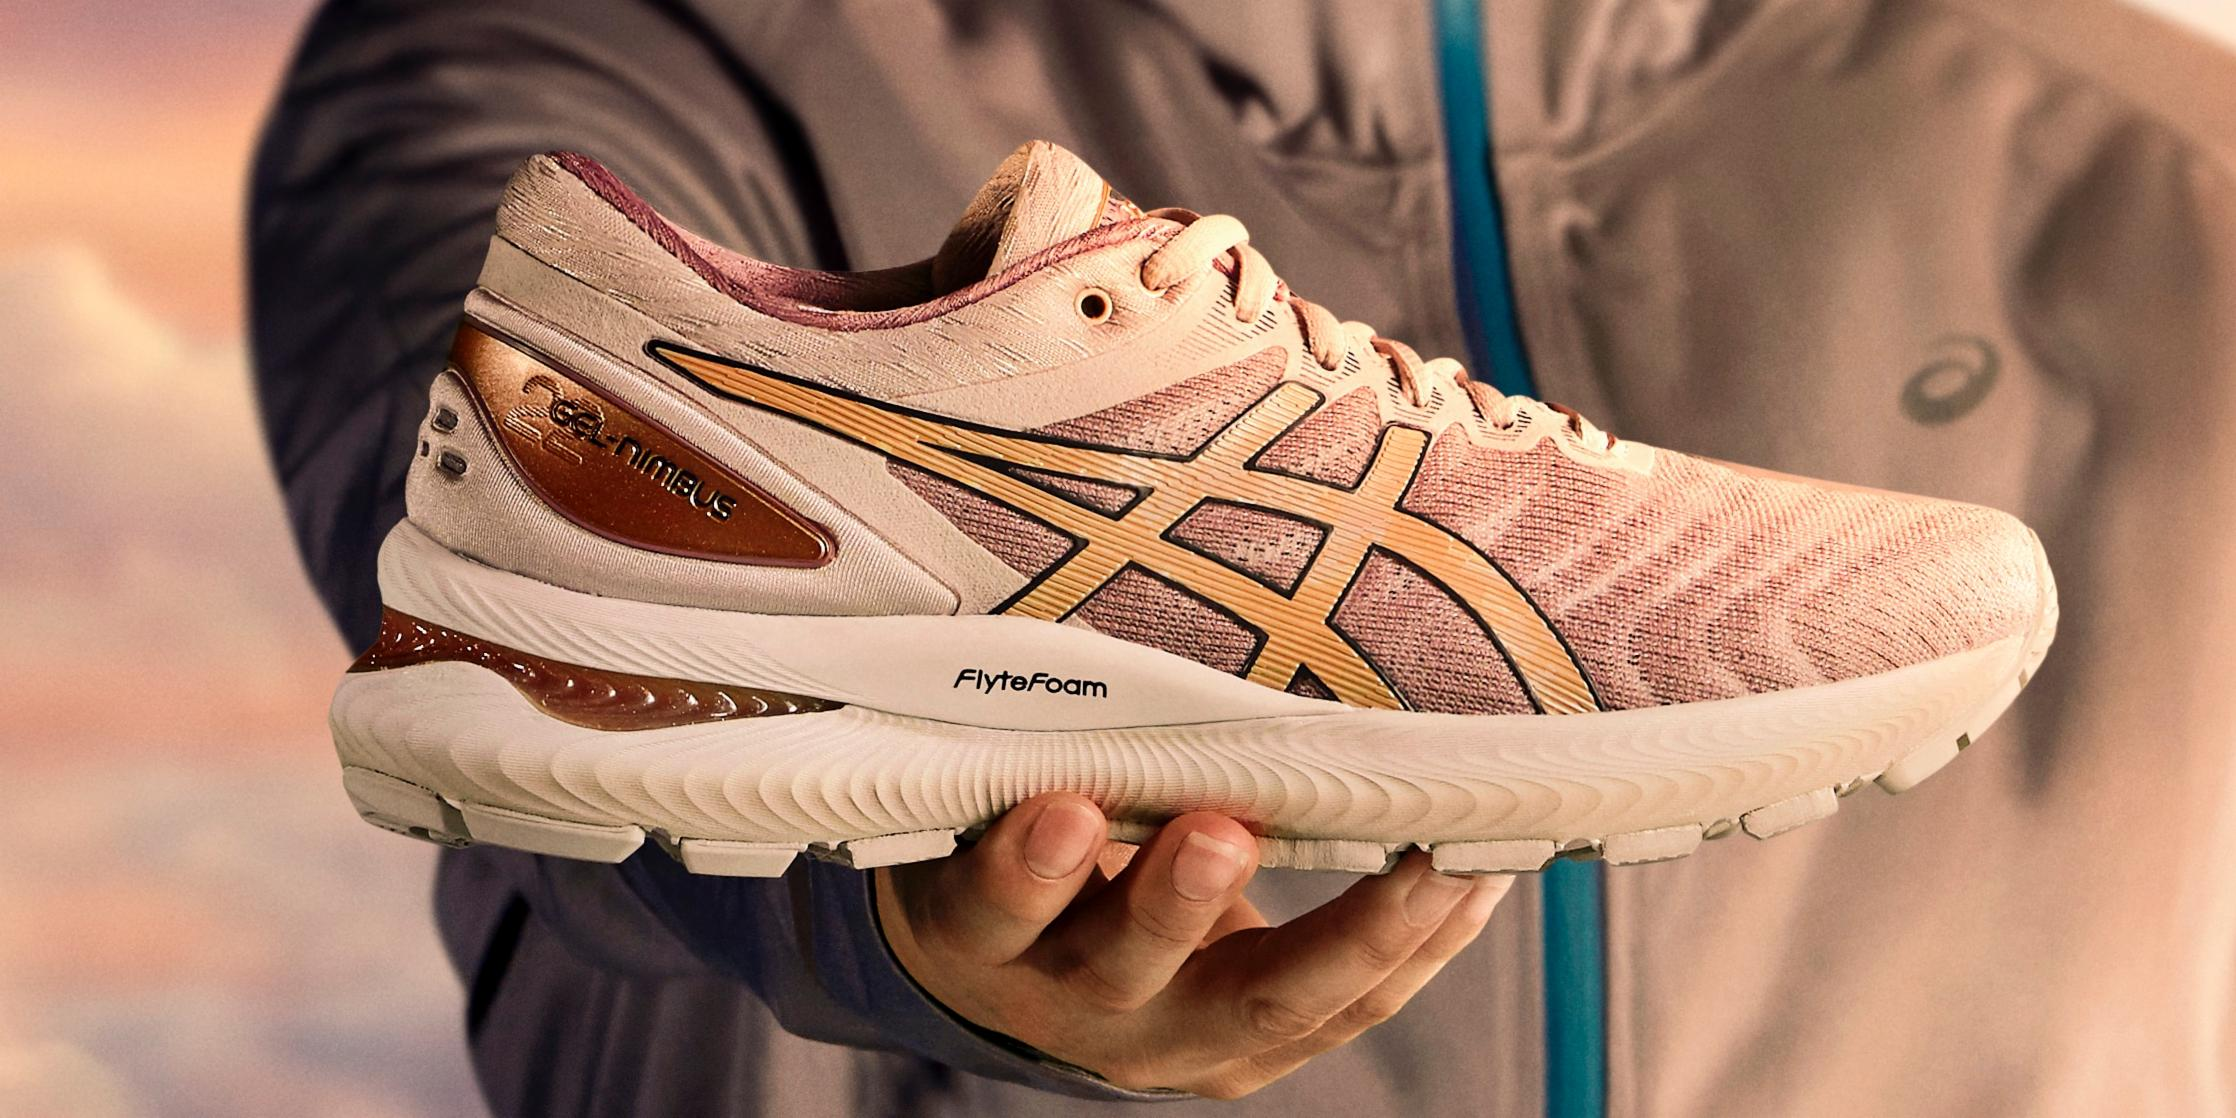 100% genuine quality separation shoes ASICS GEL-Nimbus 22 Review: 3 Reasons This Running Shoe is ...